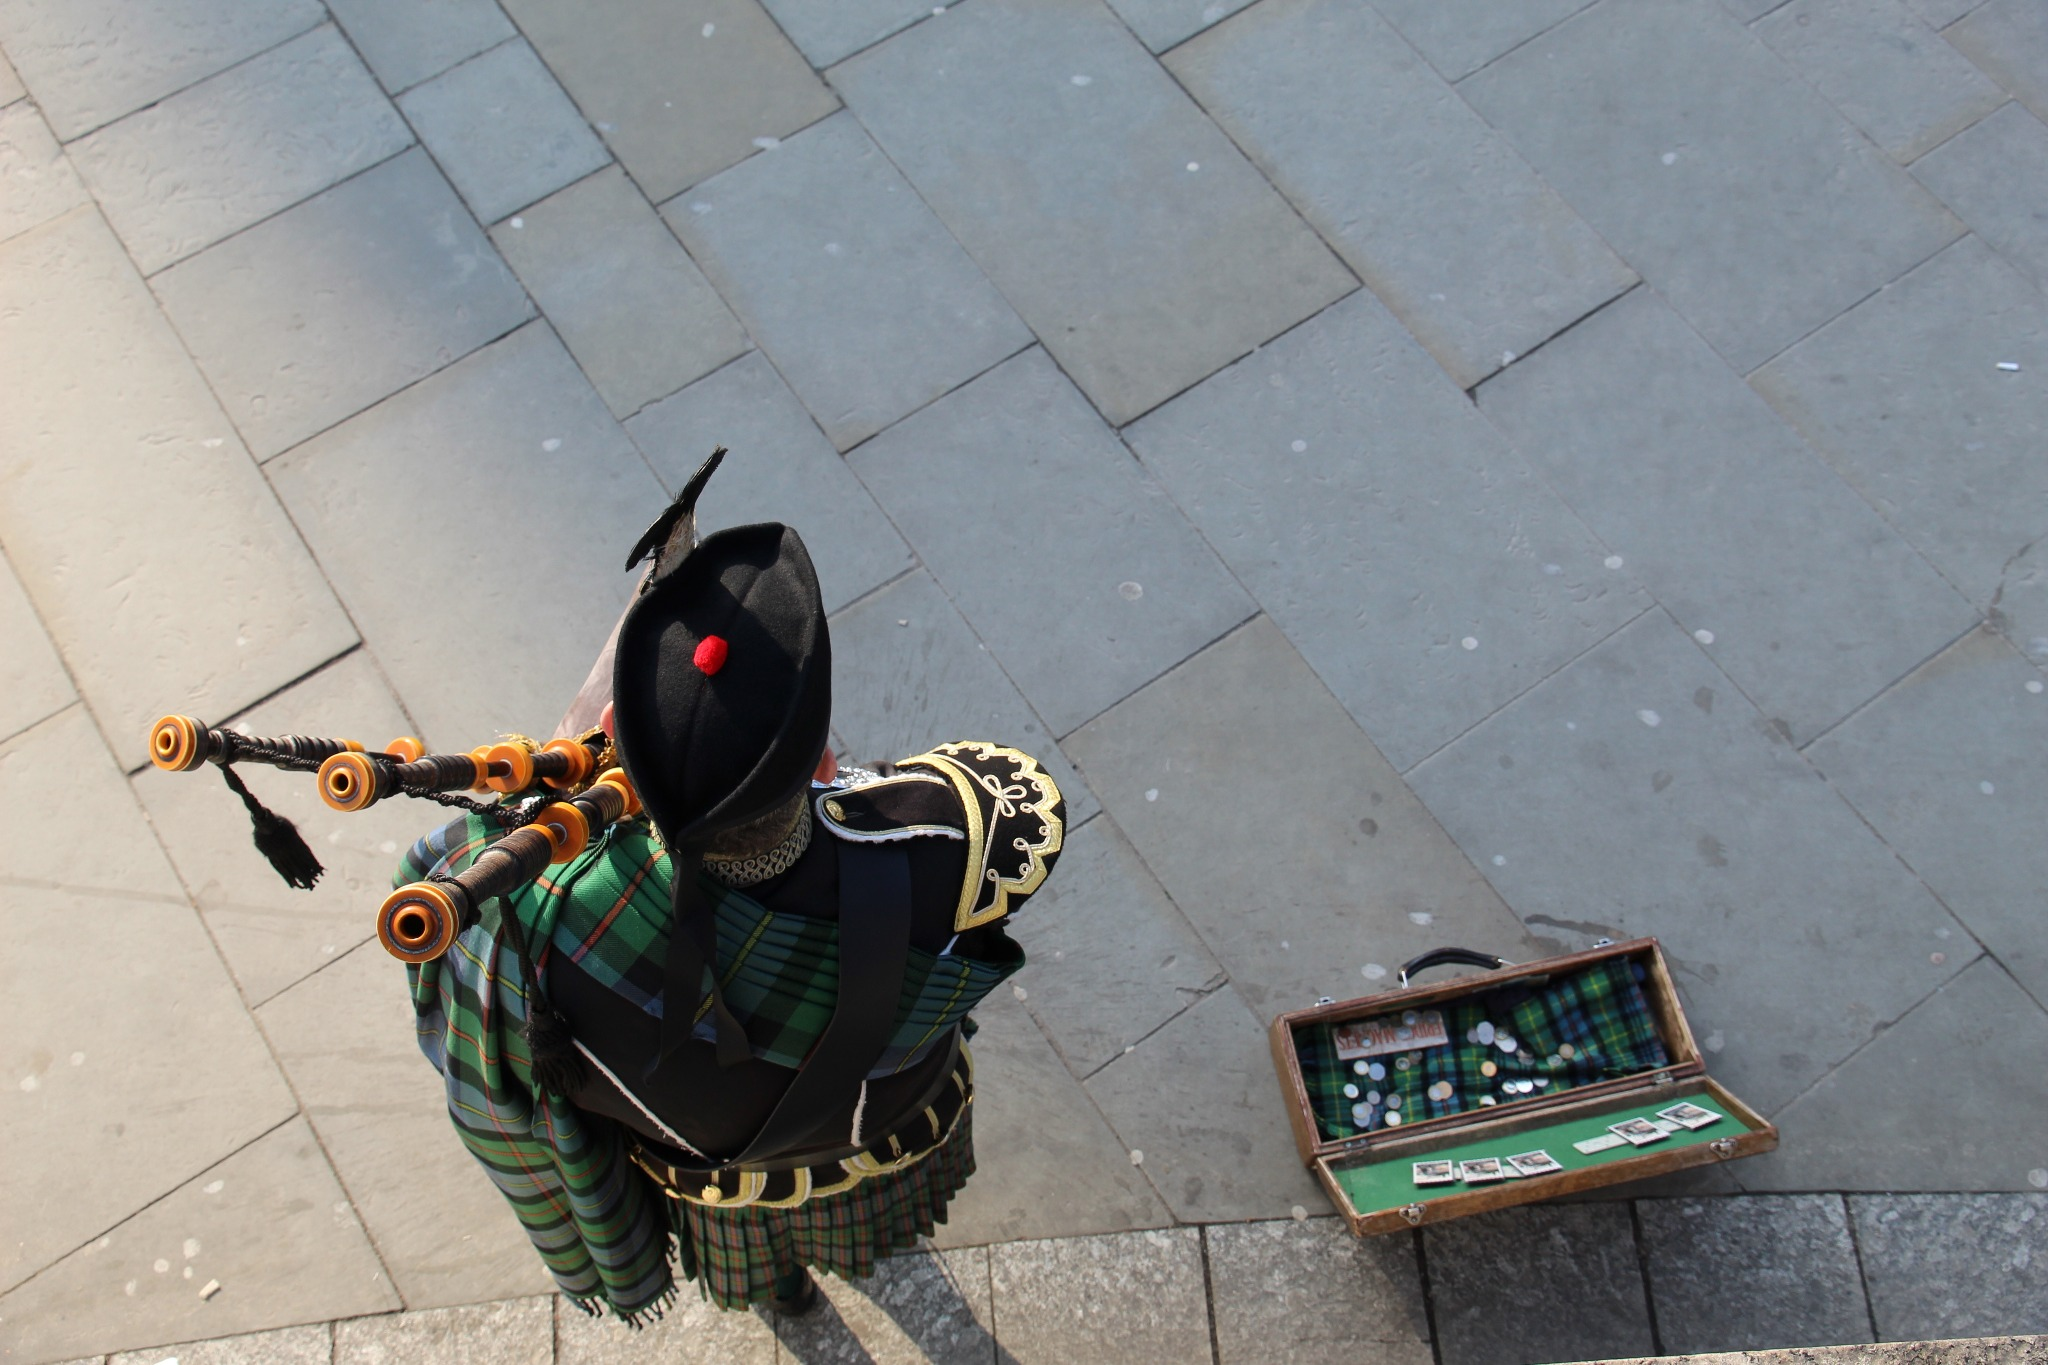 An aerial view of a bagpipe player busking and wearing a Glengarry hat